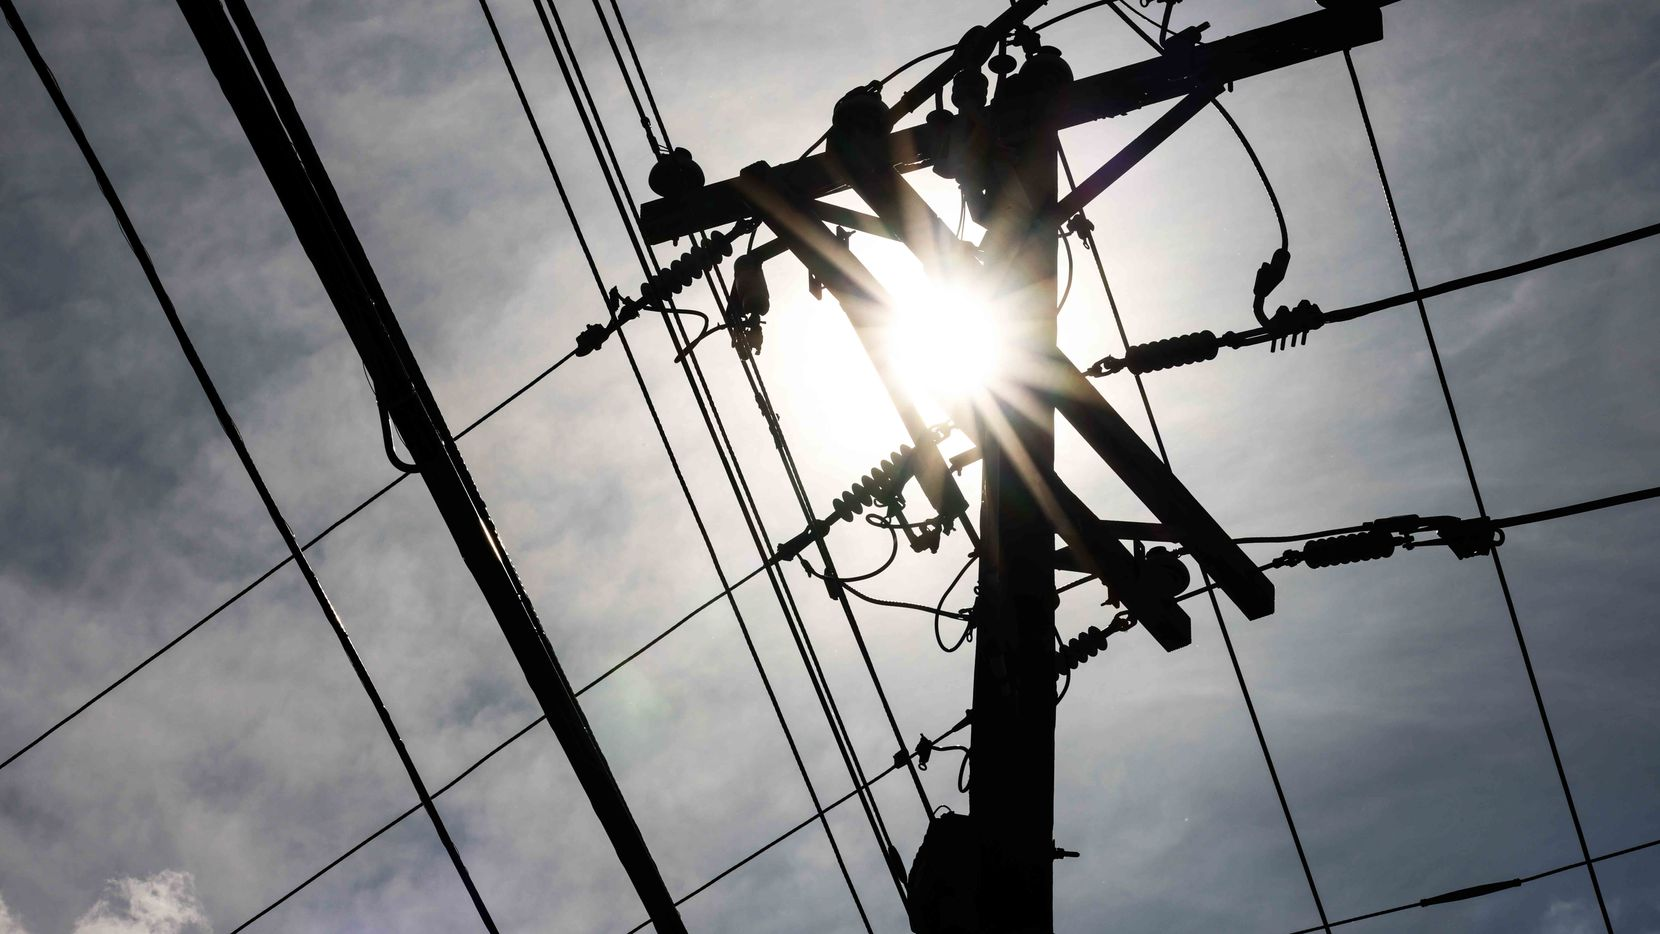 The temperature reached 97 degrees and felt like 105 in Dallas on June 14, 2021, as ERCOT send a conservation alert asking Texans to reduce electric use through Friday.